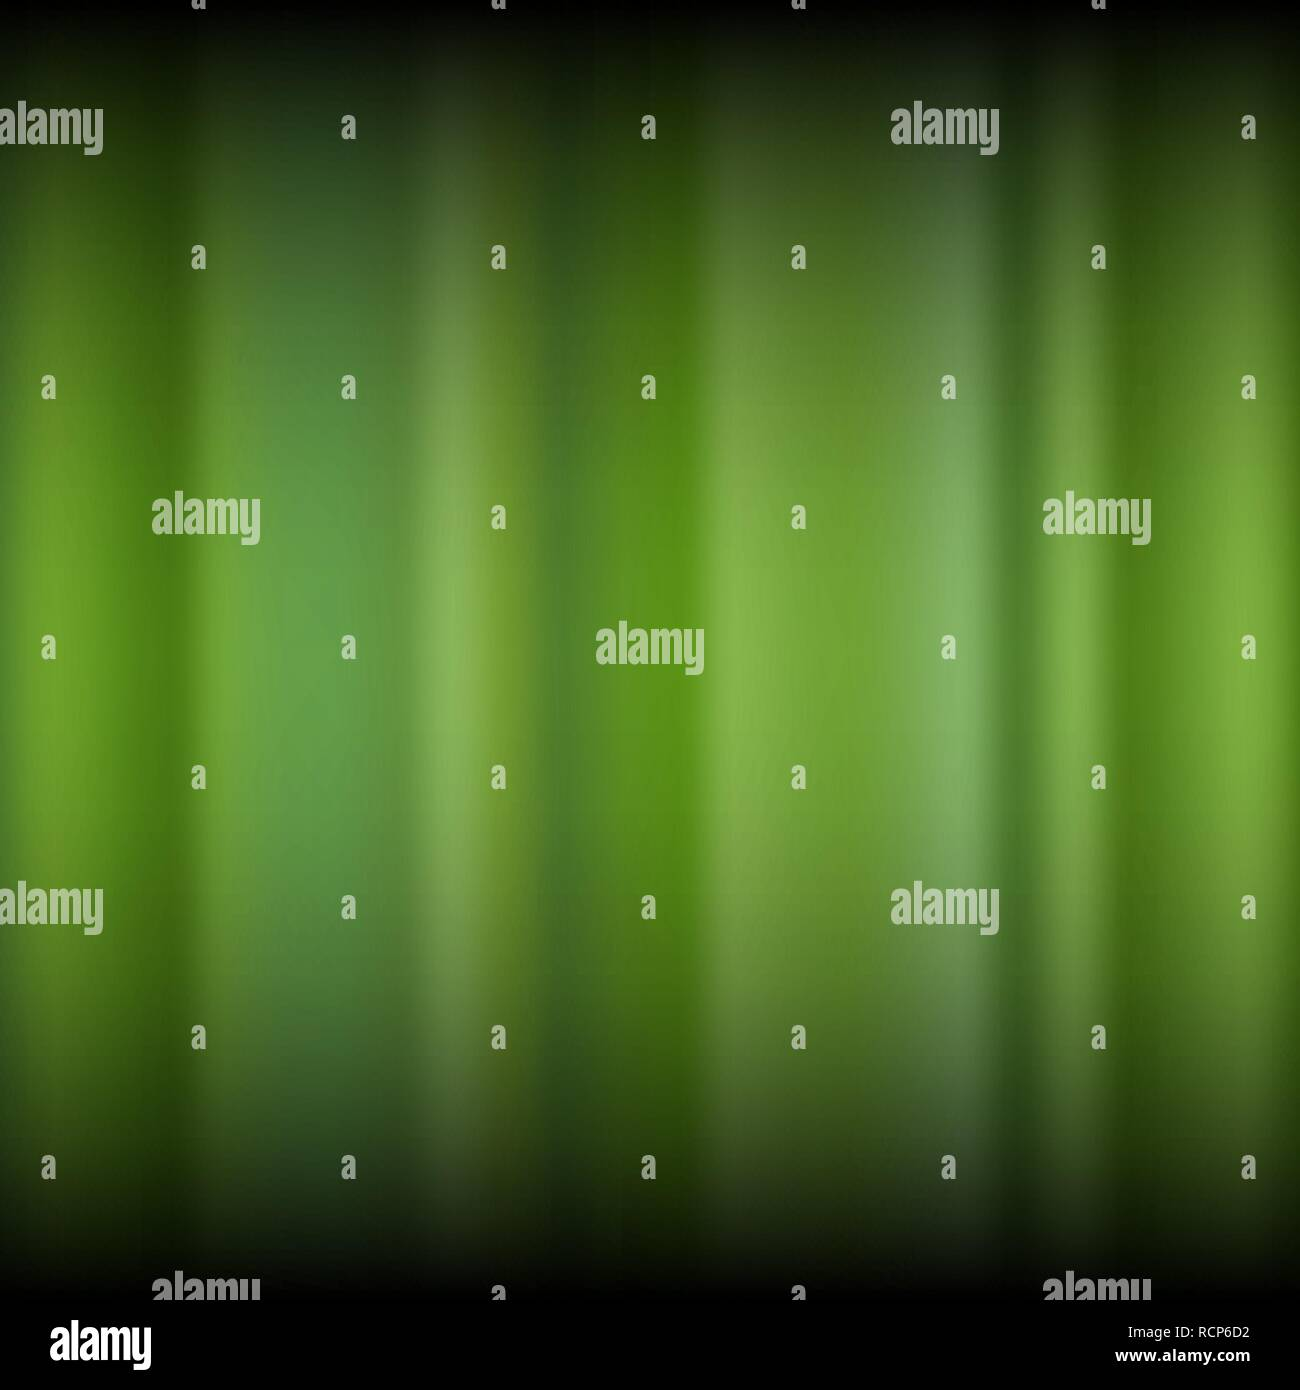 Abstract green blurred background. Vector illustration. Nature gradient background. - Stock Vector